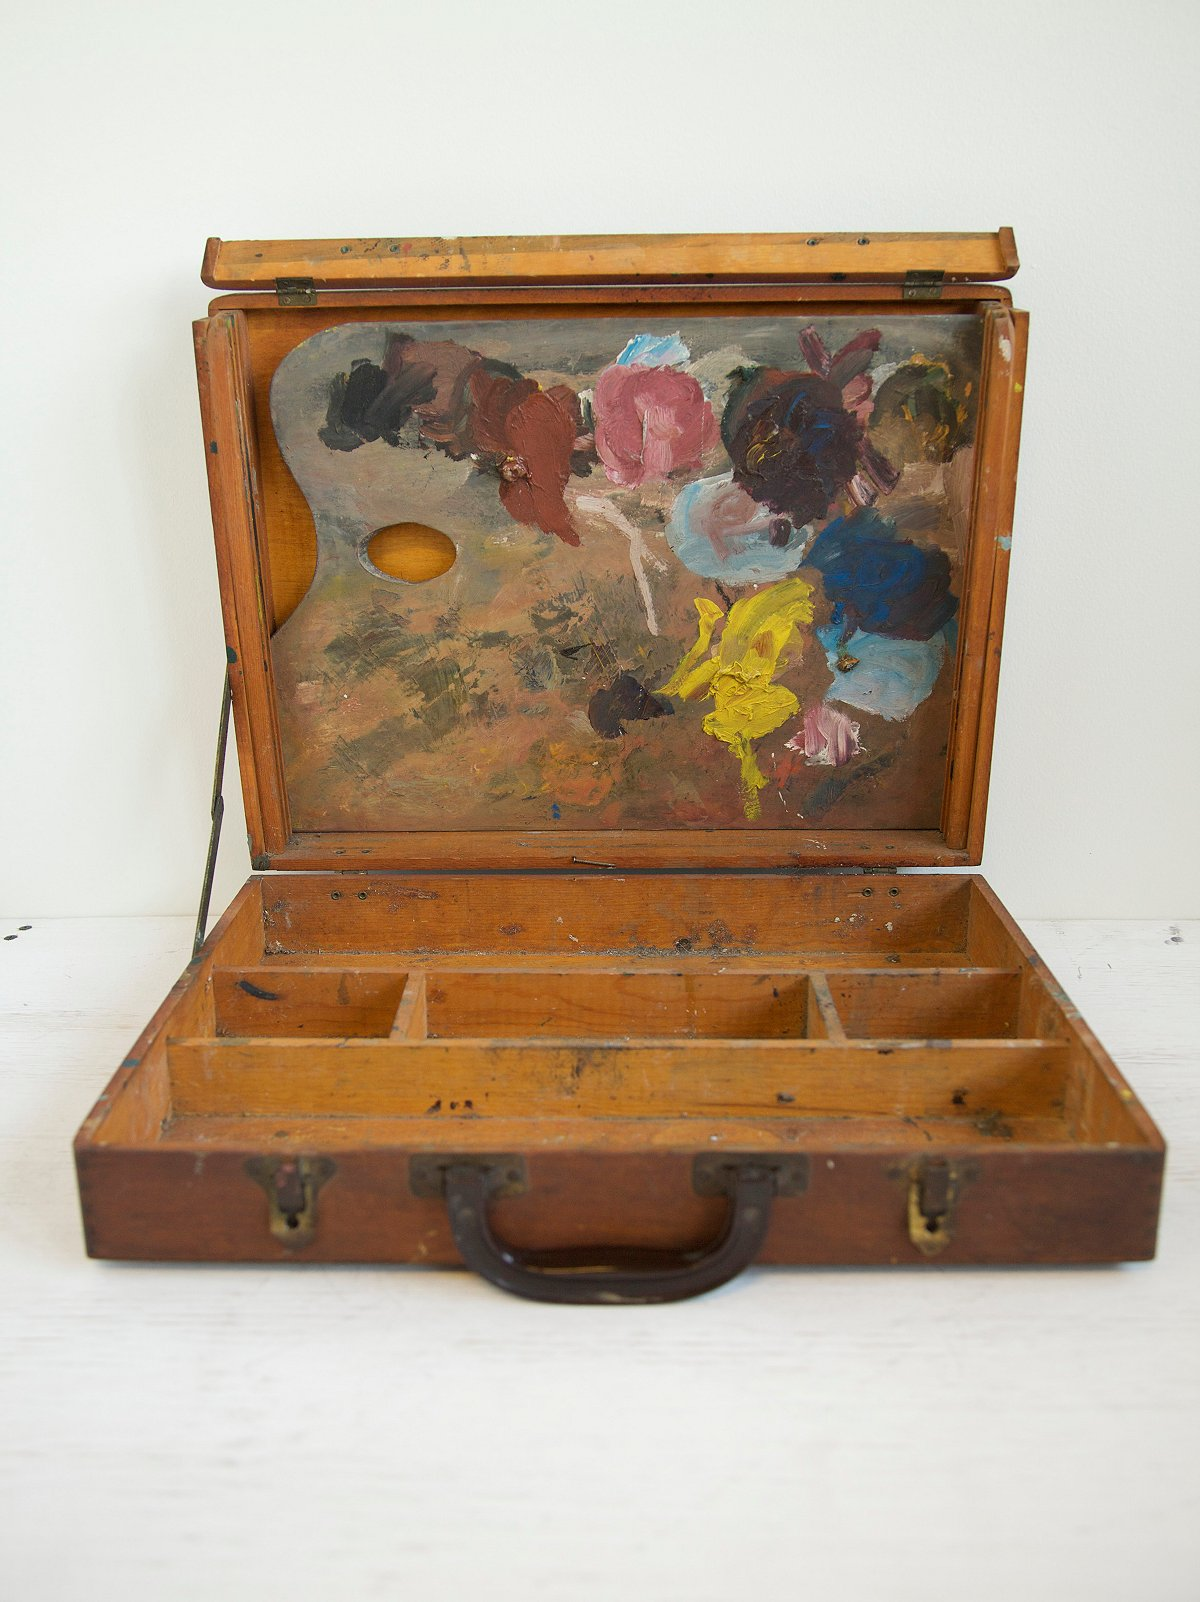 Vintage 1960s Painter's Box